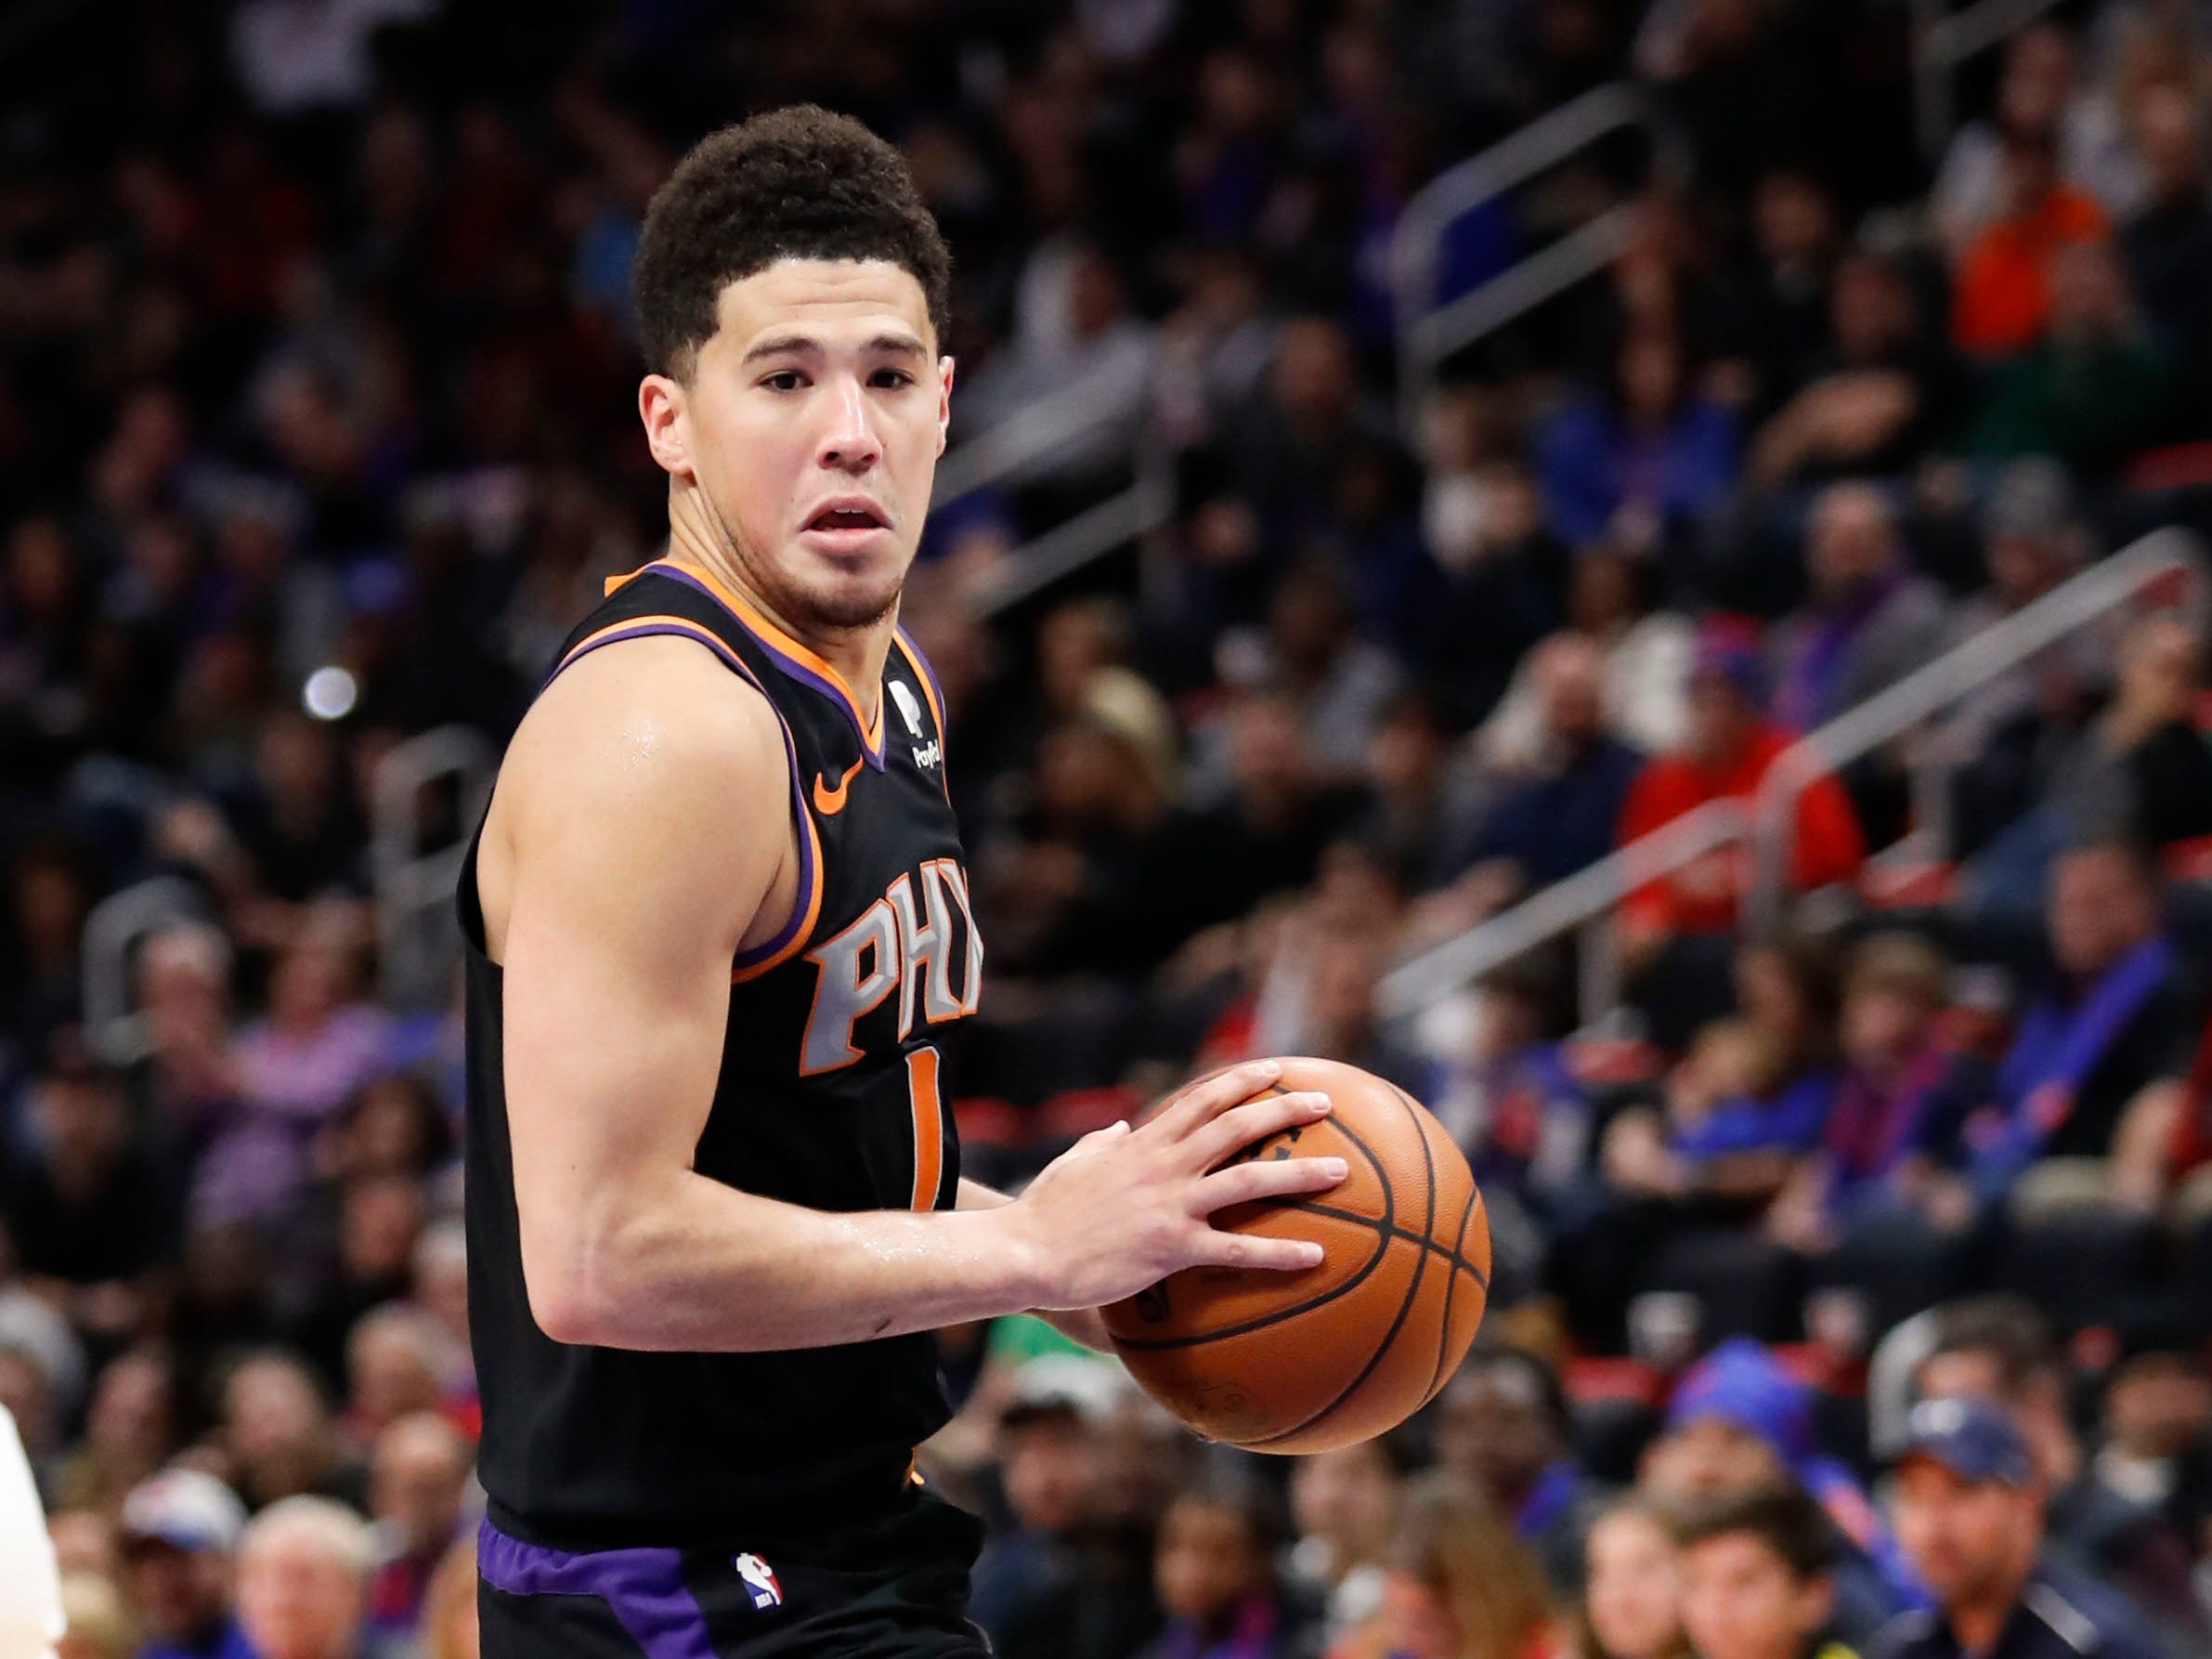 Nov 25, 2018; Detroit, MI, USA; Phoenix Suns guard Devin Booker (1) dribbles the ball during the fourth quarter against the Detroit Pistons at Little Caesars Arena. Mandatory Credit: Raj Mehta-USA TODAY Sports